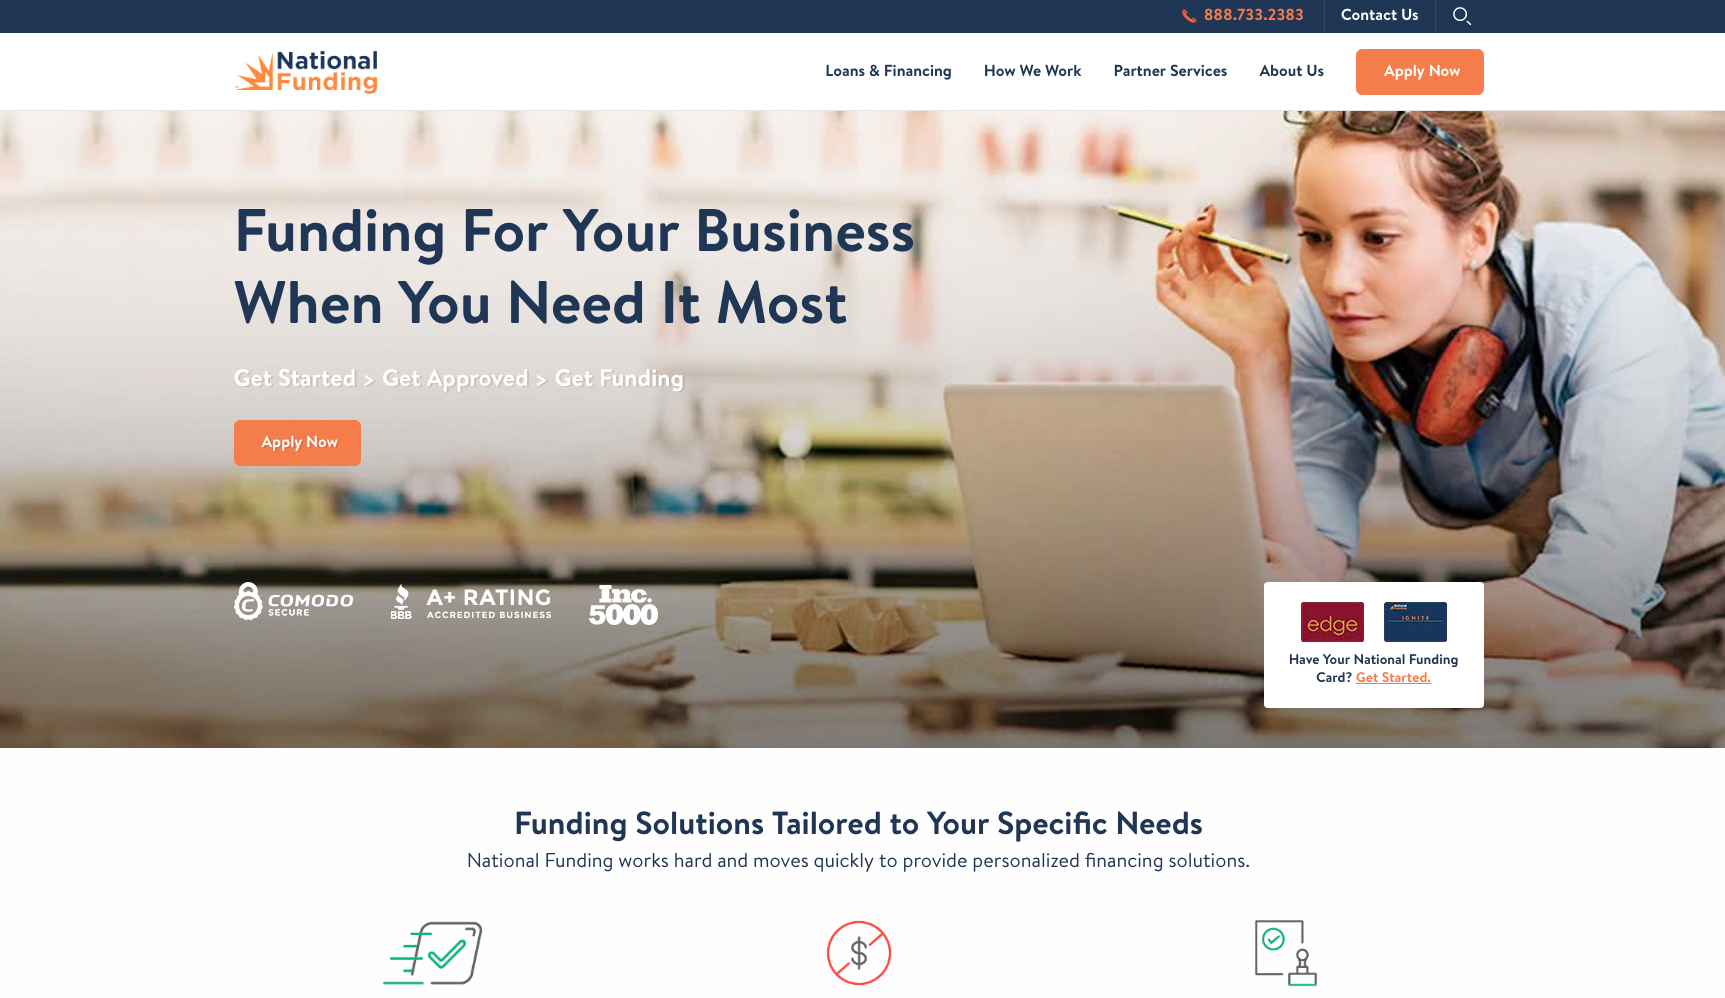 NATIONALFUNDING.COM ScreenShot